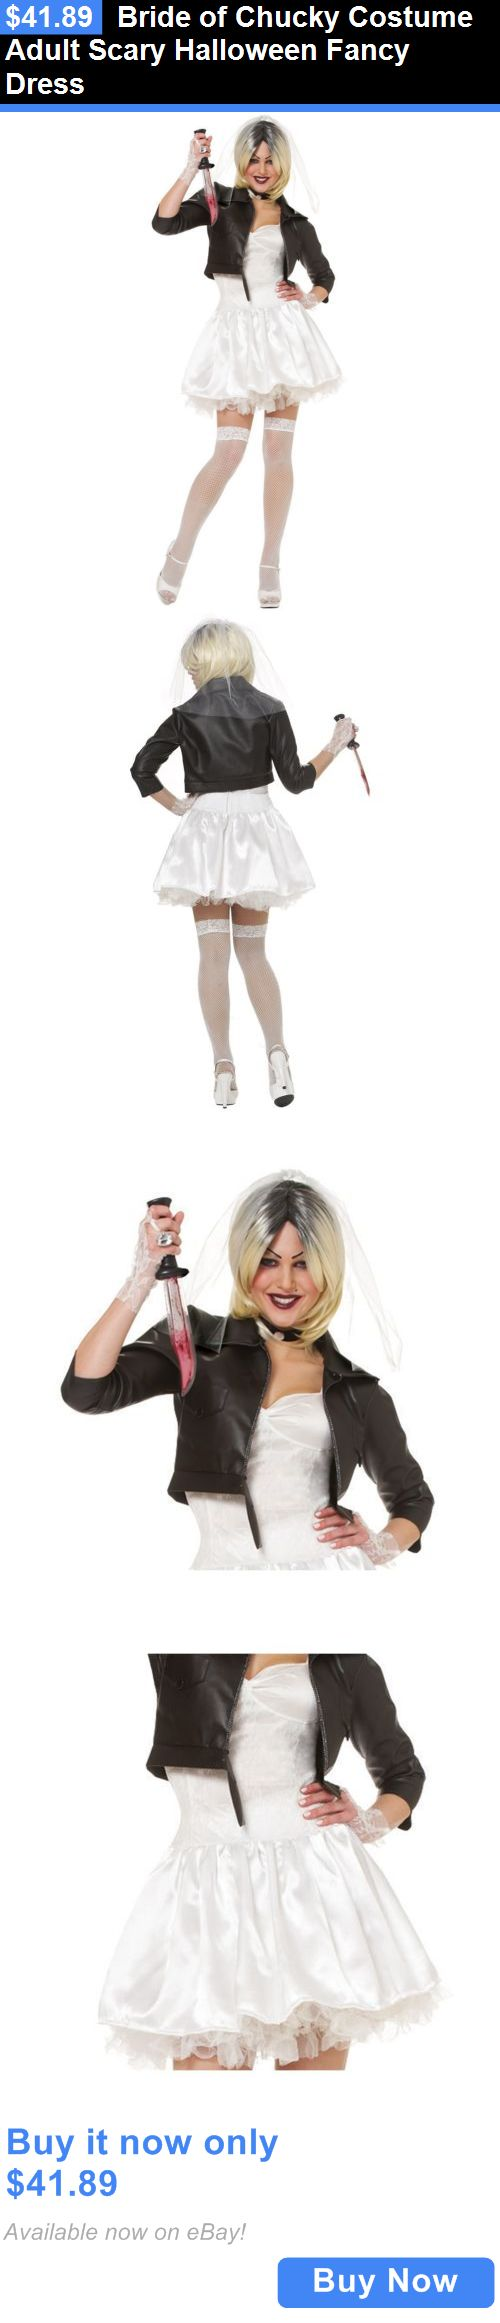 Halloween Costumes Women: Bride Of Chucky Costume Adult Scary Halloween Fancy Dress BUY IT NOW ONLY: $41.89